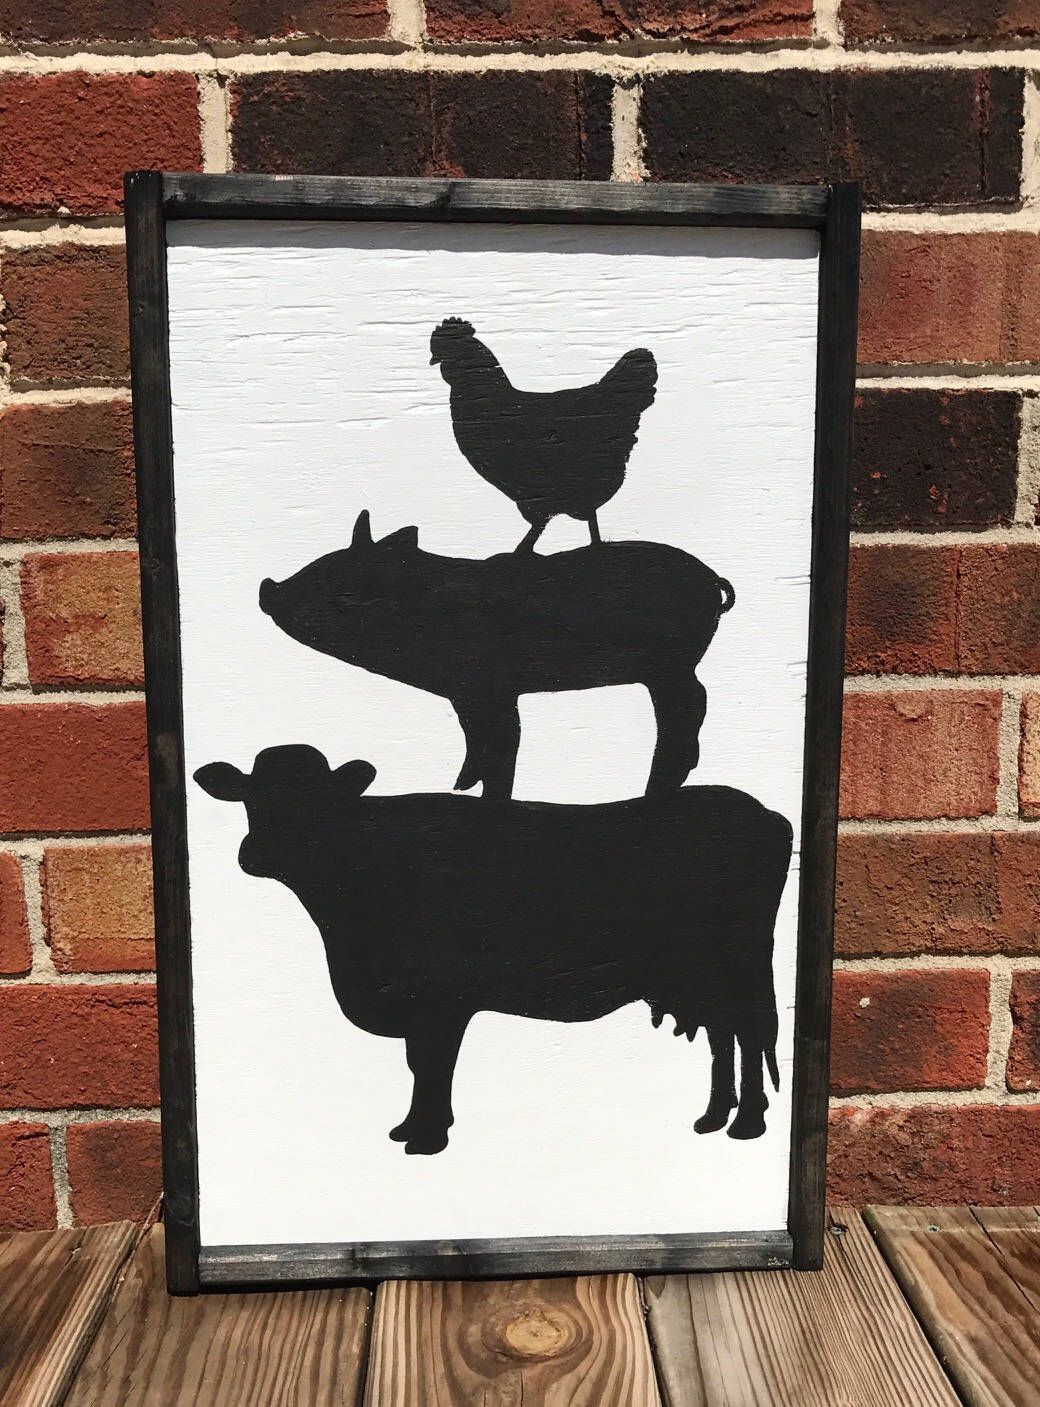 Animal stack sign, Farm stack sign, Pig sign, Cow sign, Chicken sign, farmhouse sign, farmhouse decor, kitchen signs, kitchen decor sign is part of Retro decor Signs - cRlLXv